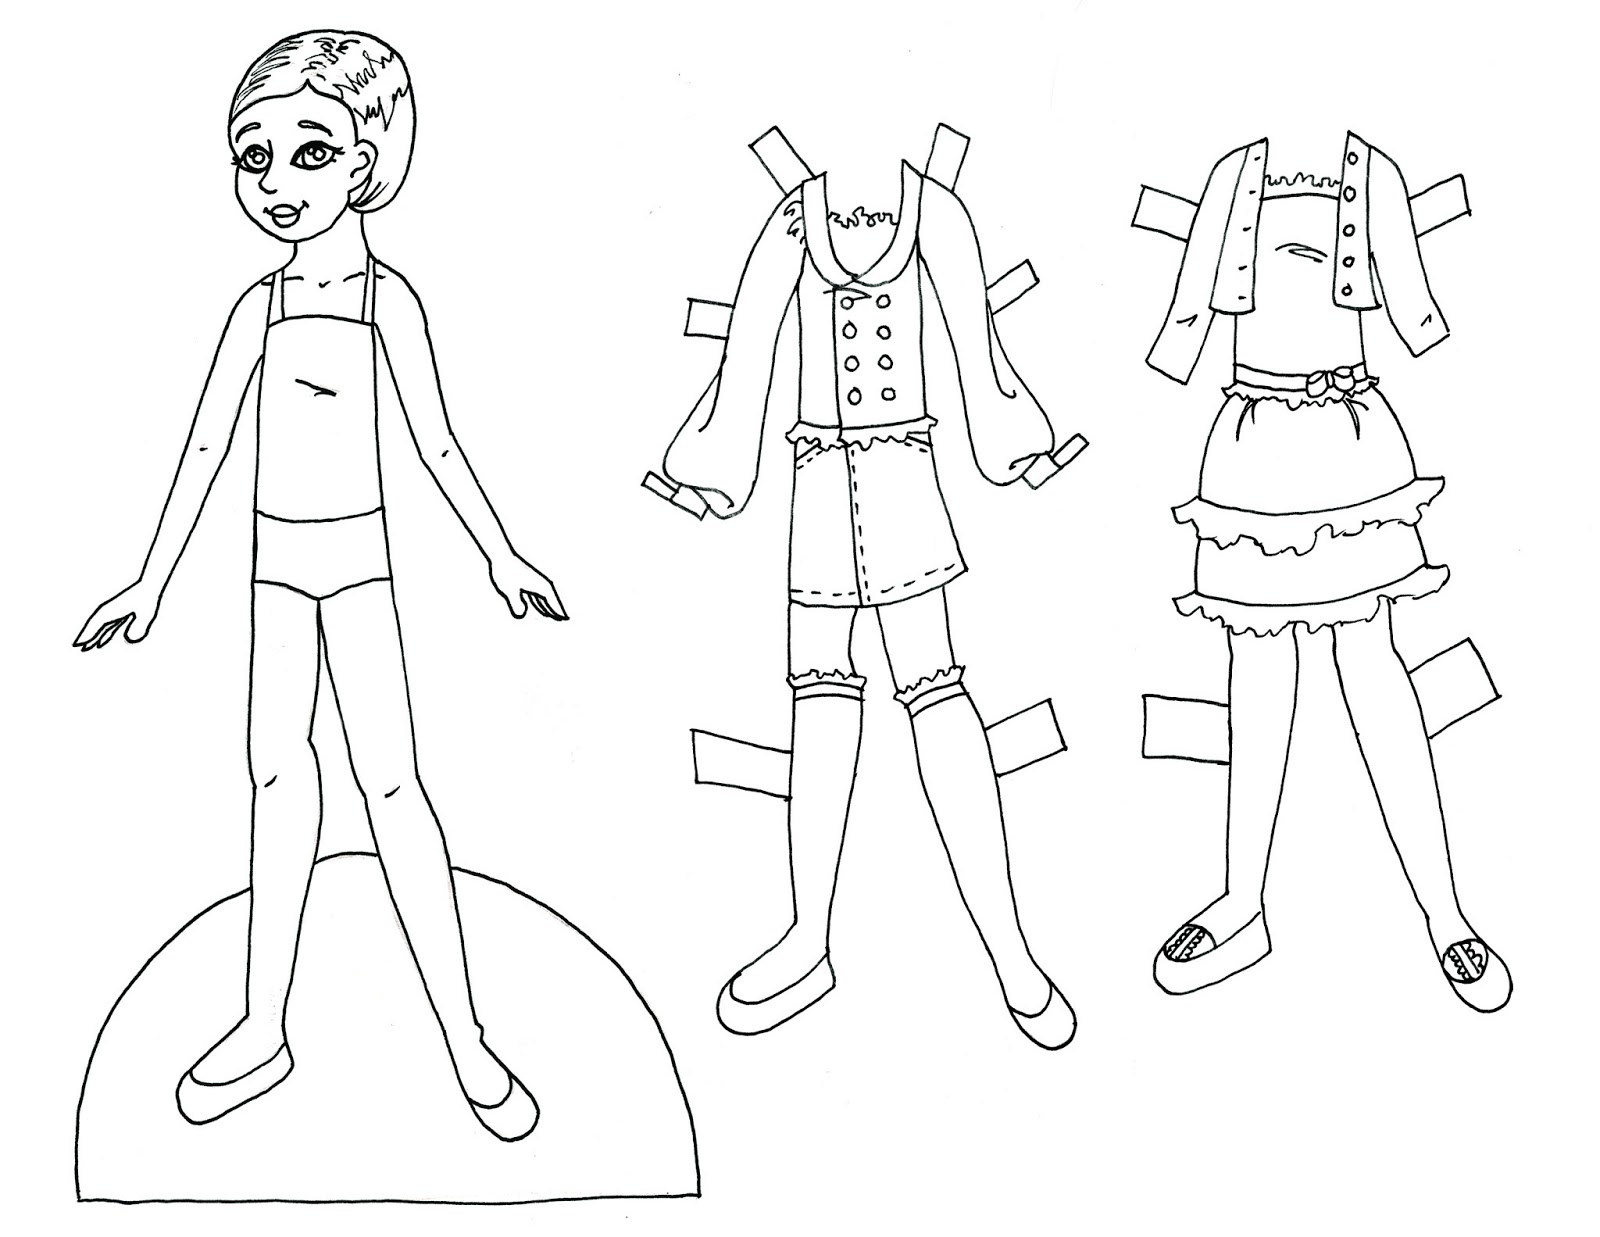 Paper Doll School: May 2013